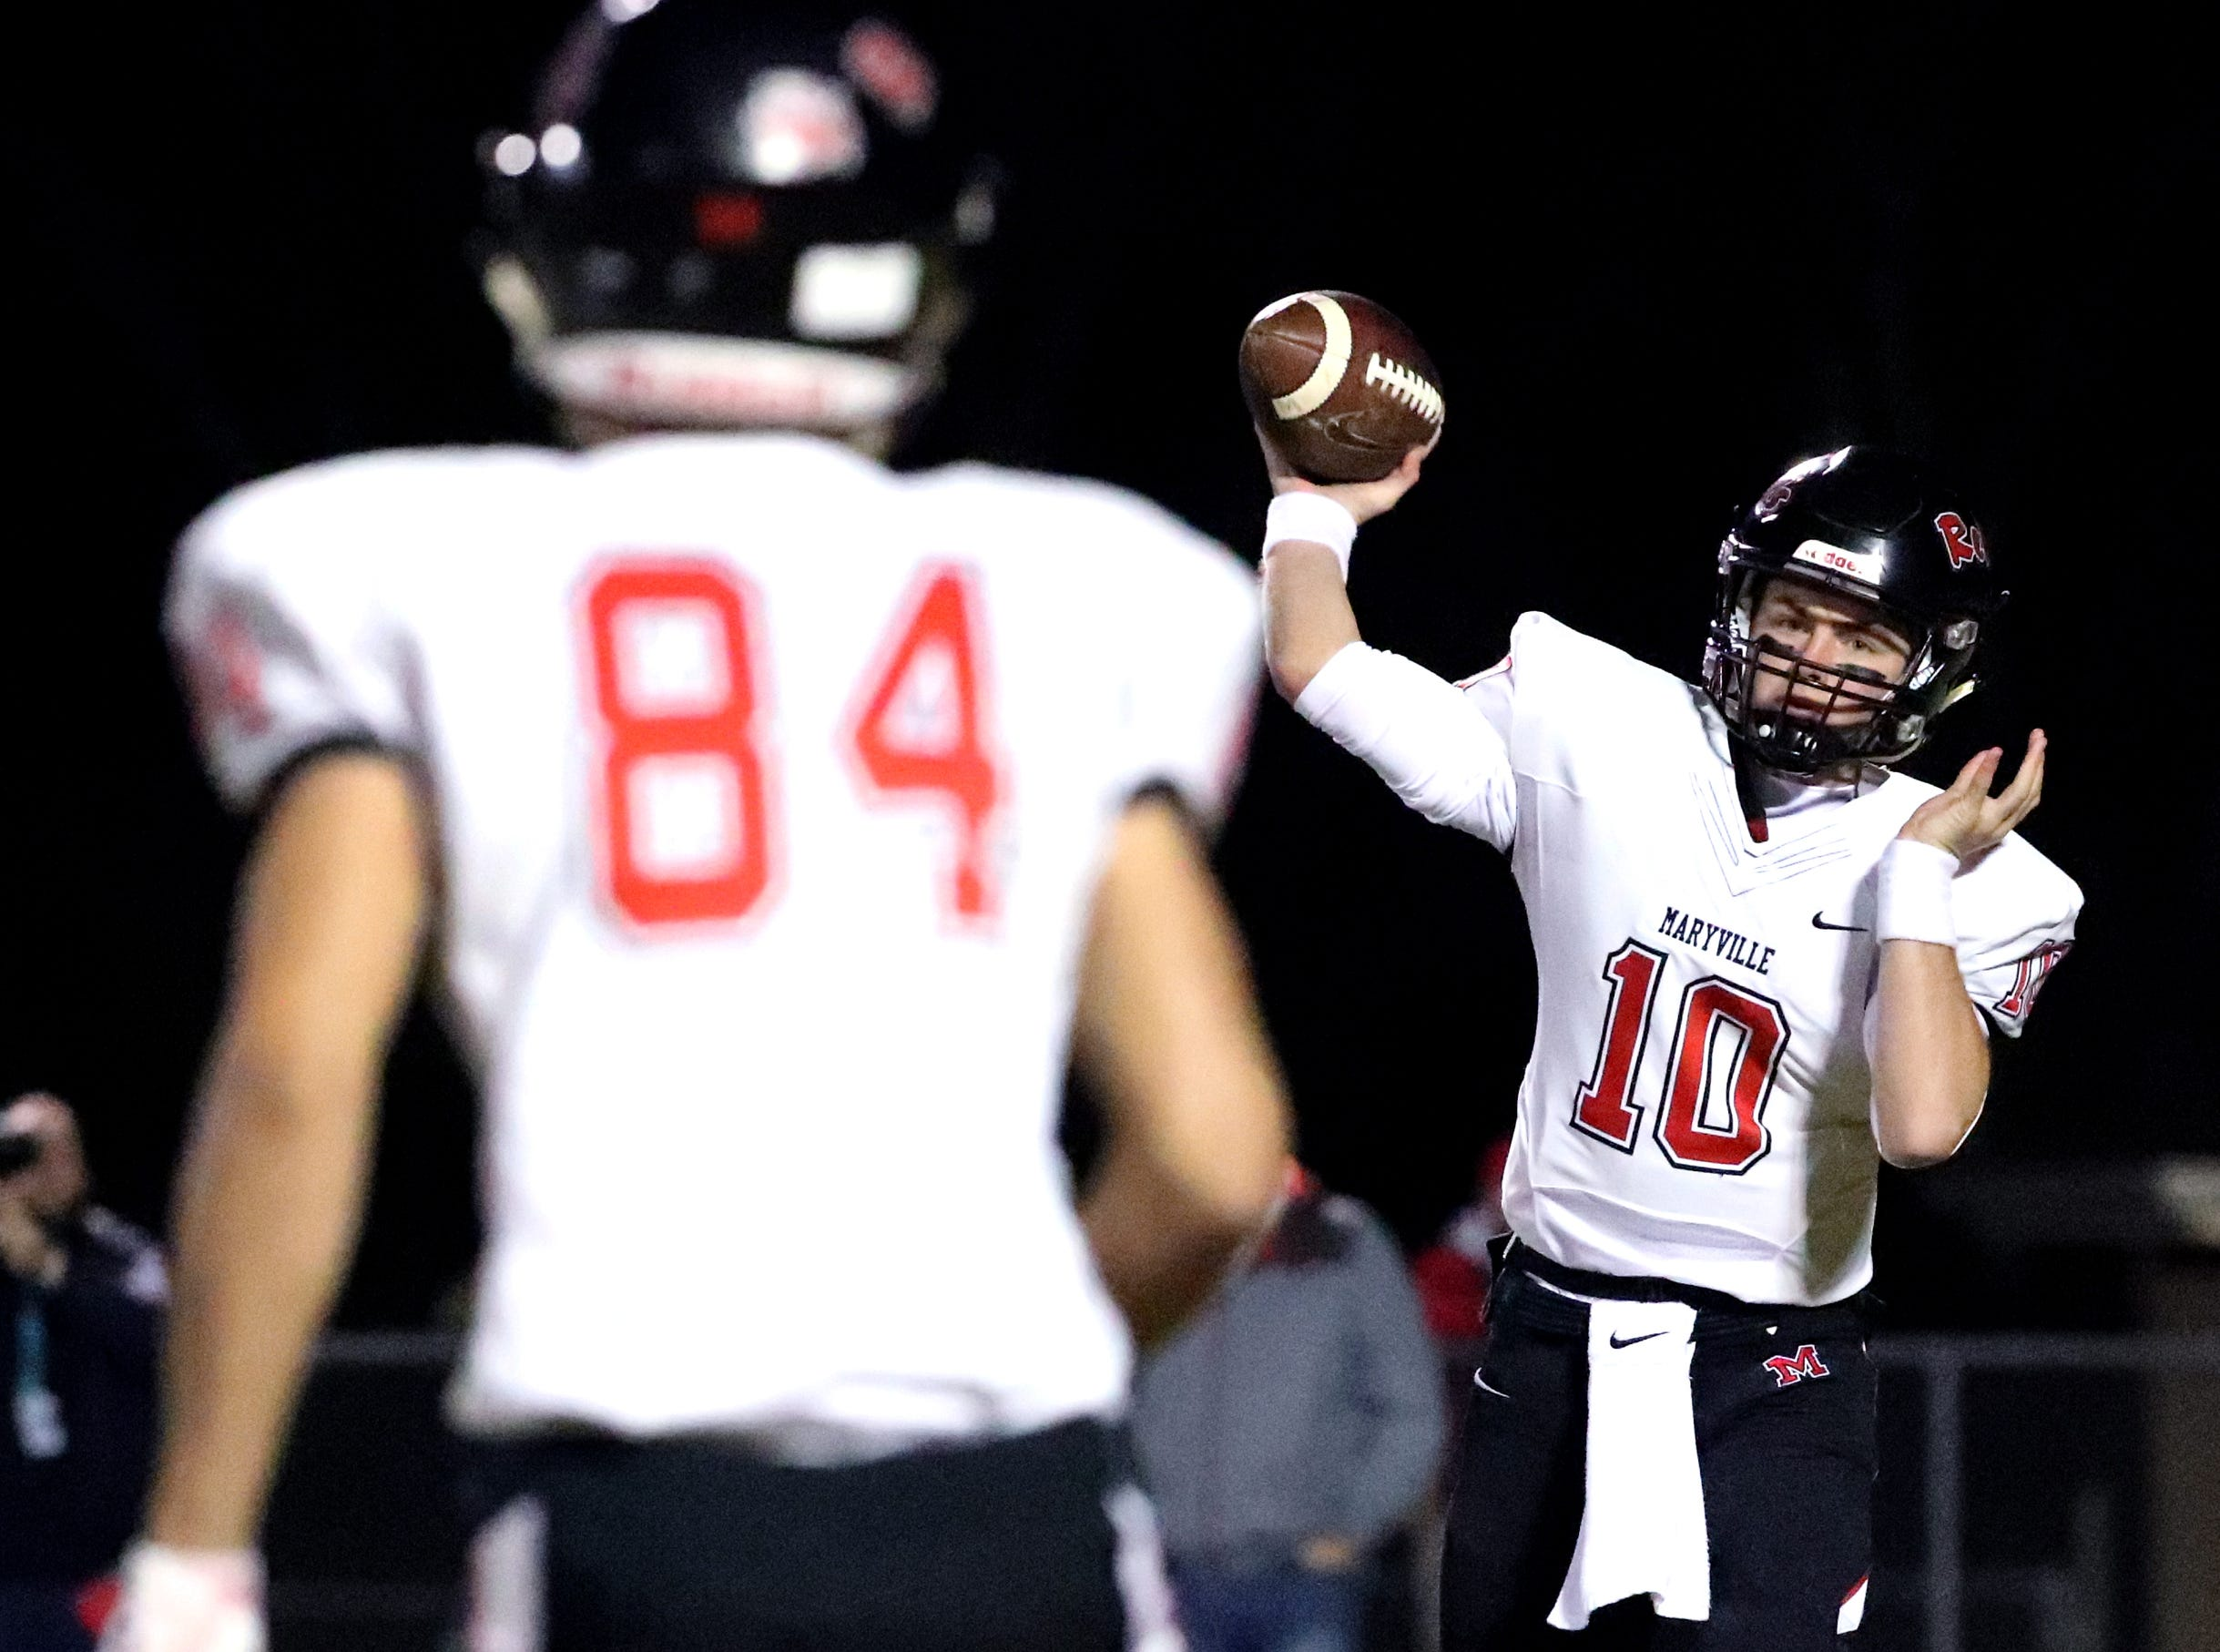 Maryville's Braden Carnes (10) passes the ball to Brayden Anderson (84) during the game against Oakland at Oakland in Murfreesboro, on Friday, Aug. 23 2018, during the 6A playoffs.